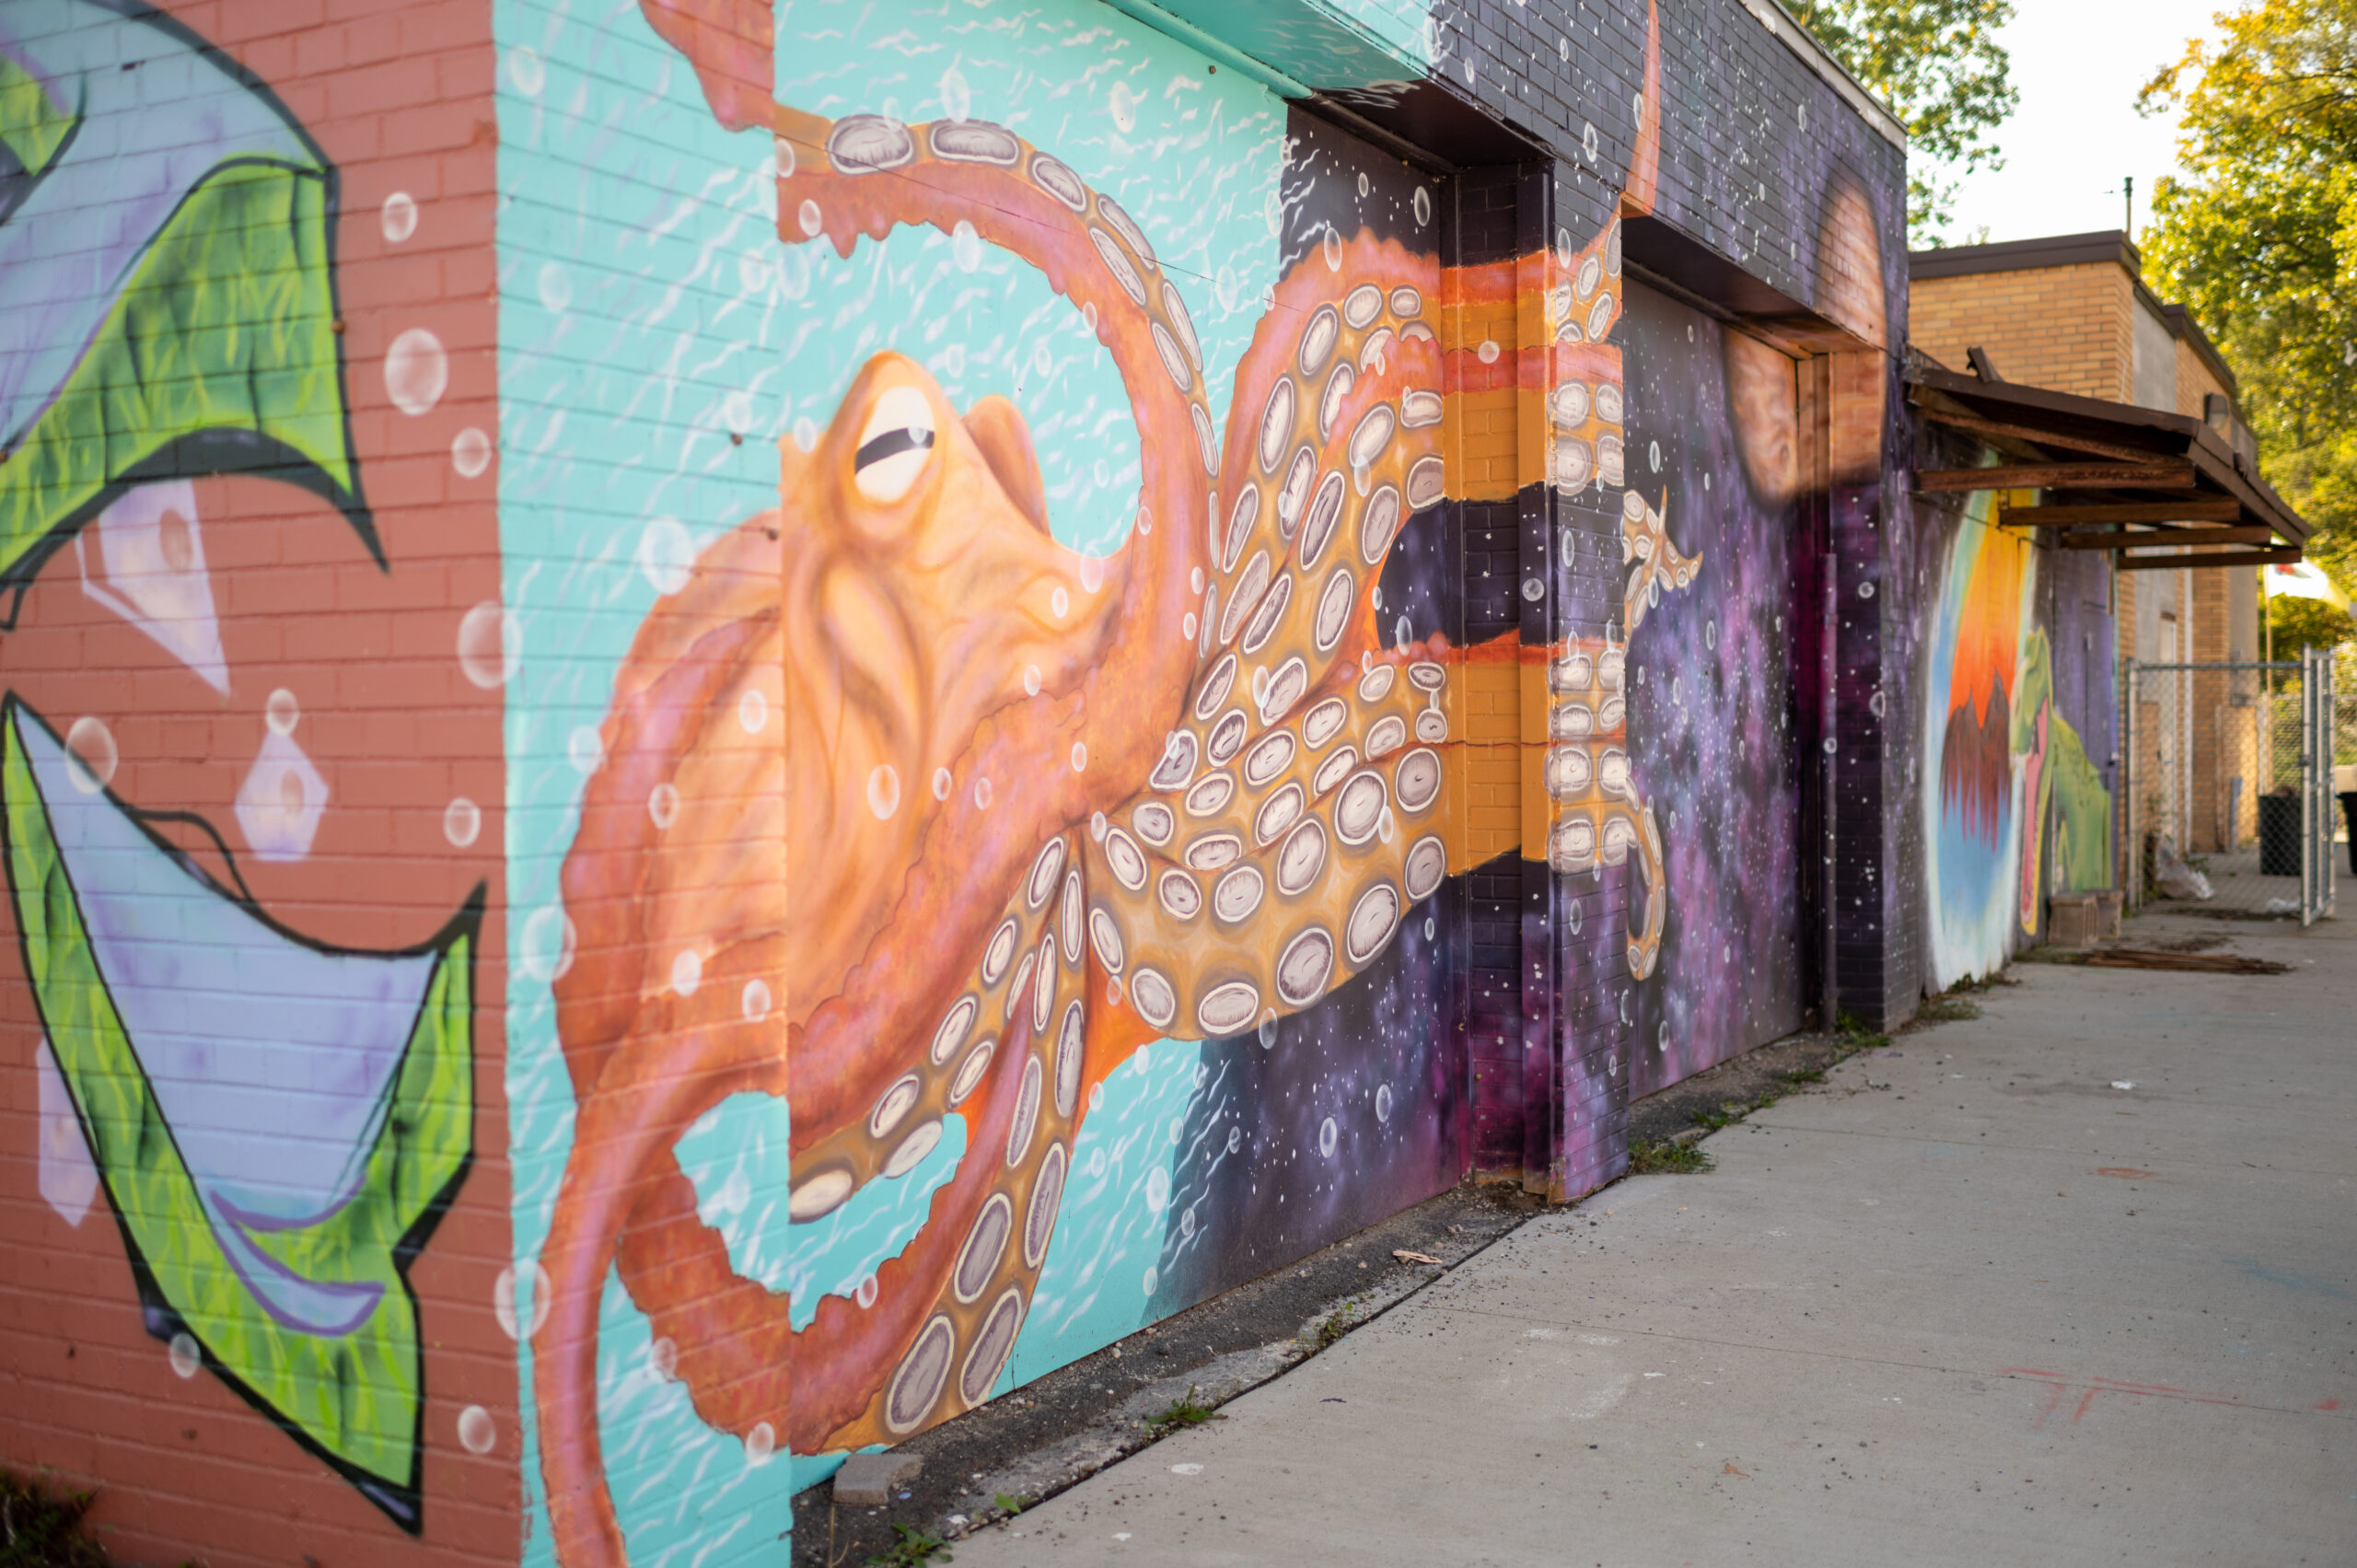 An homage to Diego Rivera: a student-painted mural at Brightmoor. Image credit: Eric Bronson, Michigan Photography